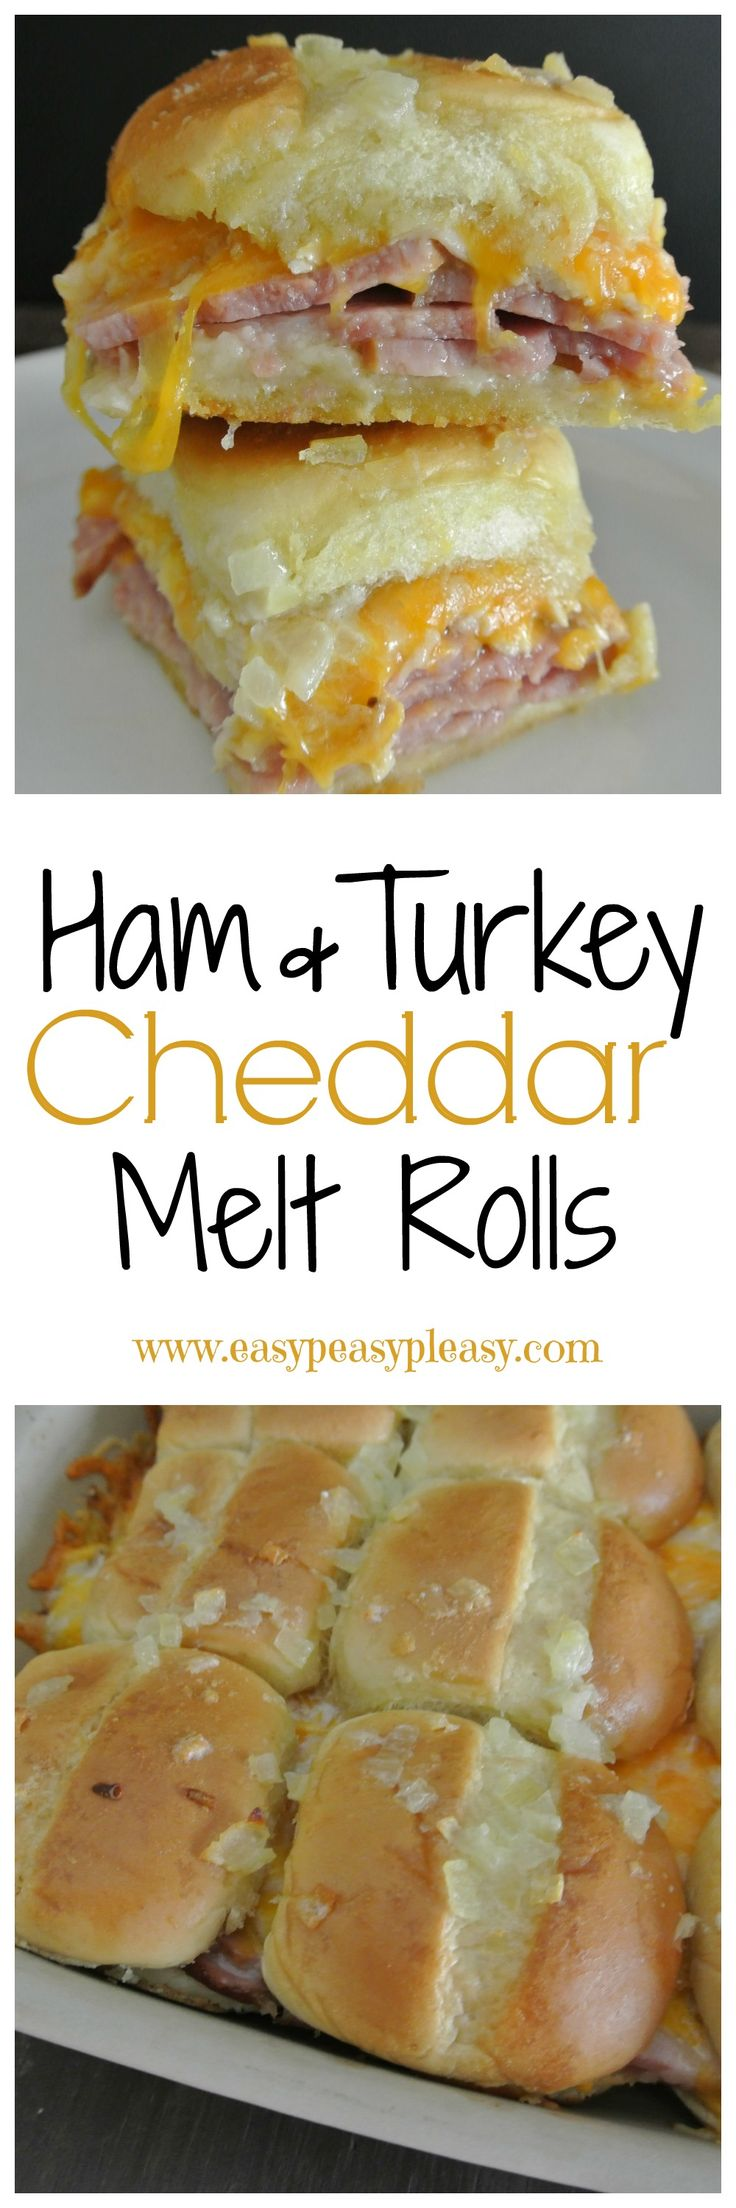 Ham and Turkey Cheddar Melt Rolls are an easy delicious way to use up those holiday leftovers.